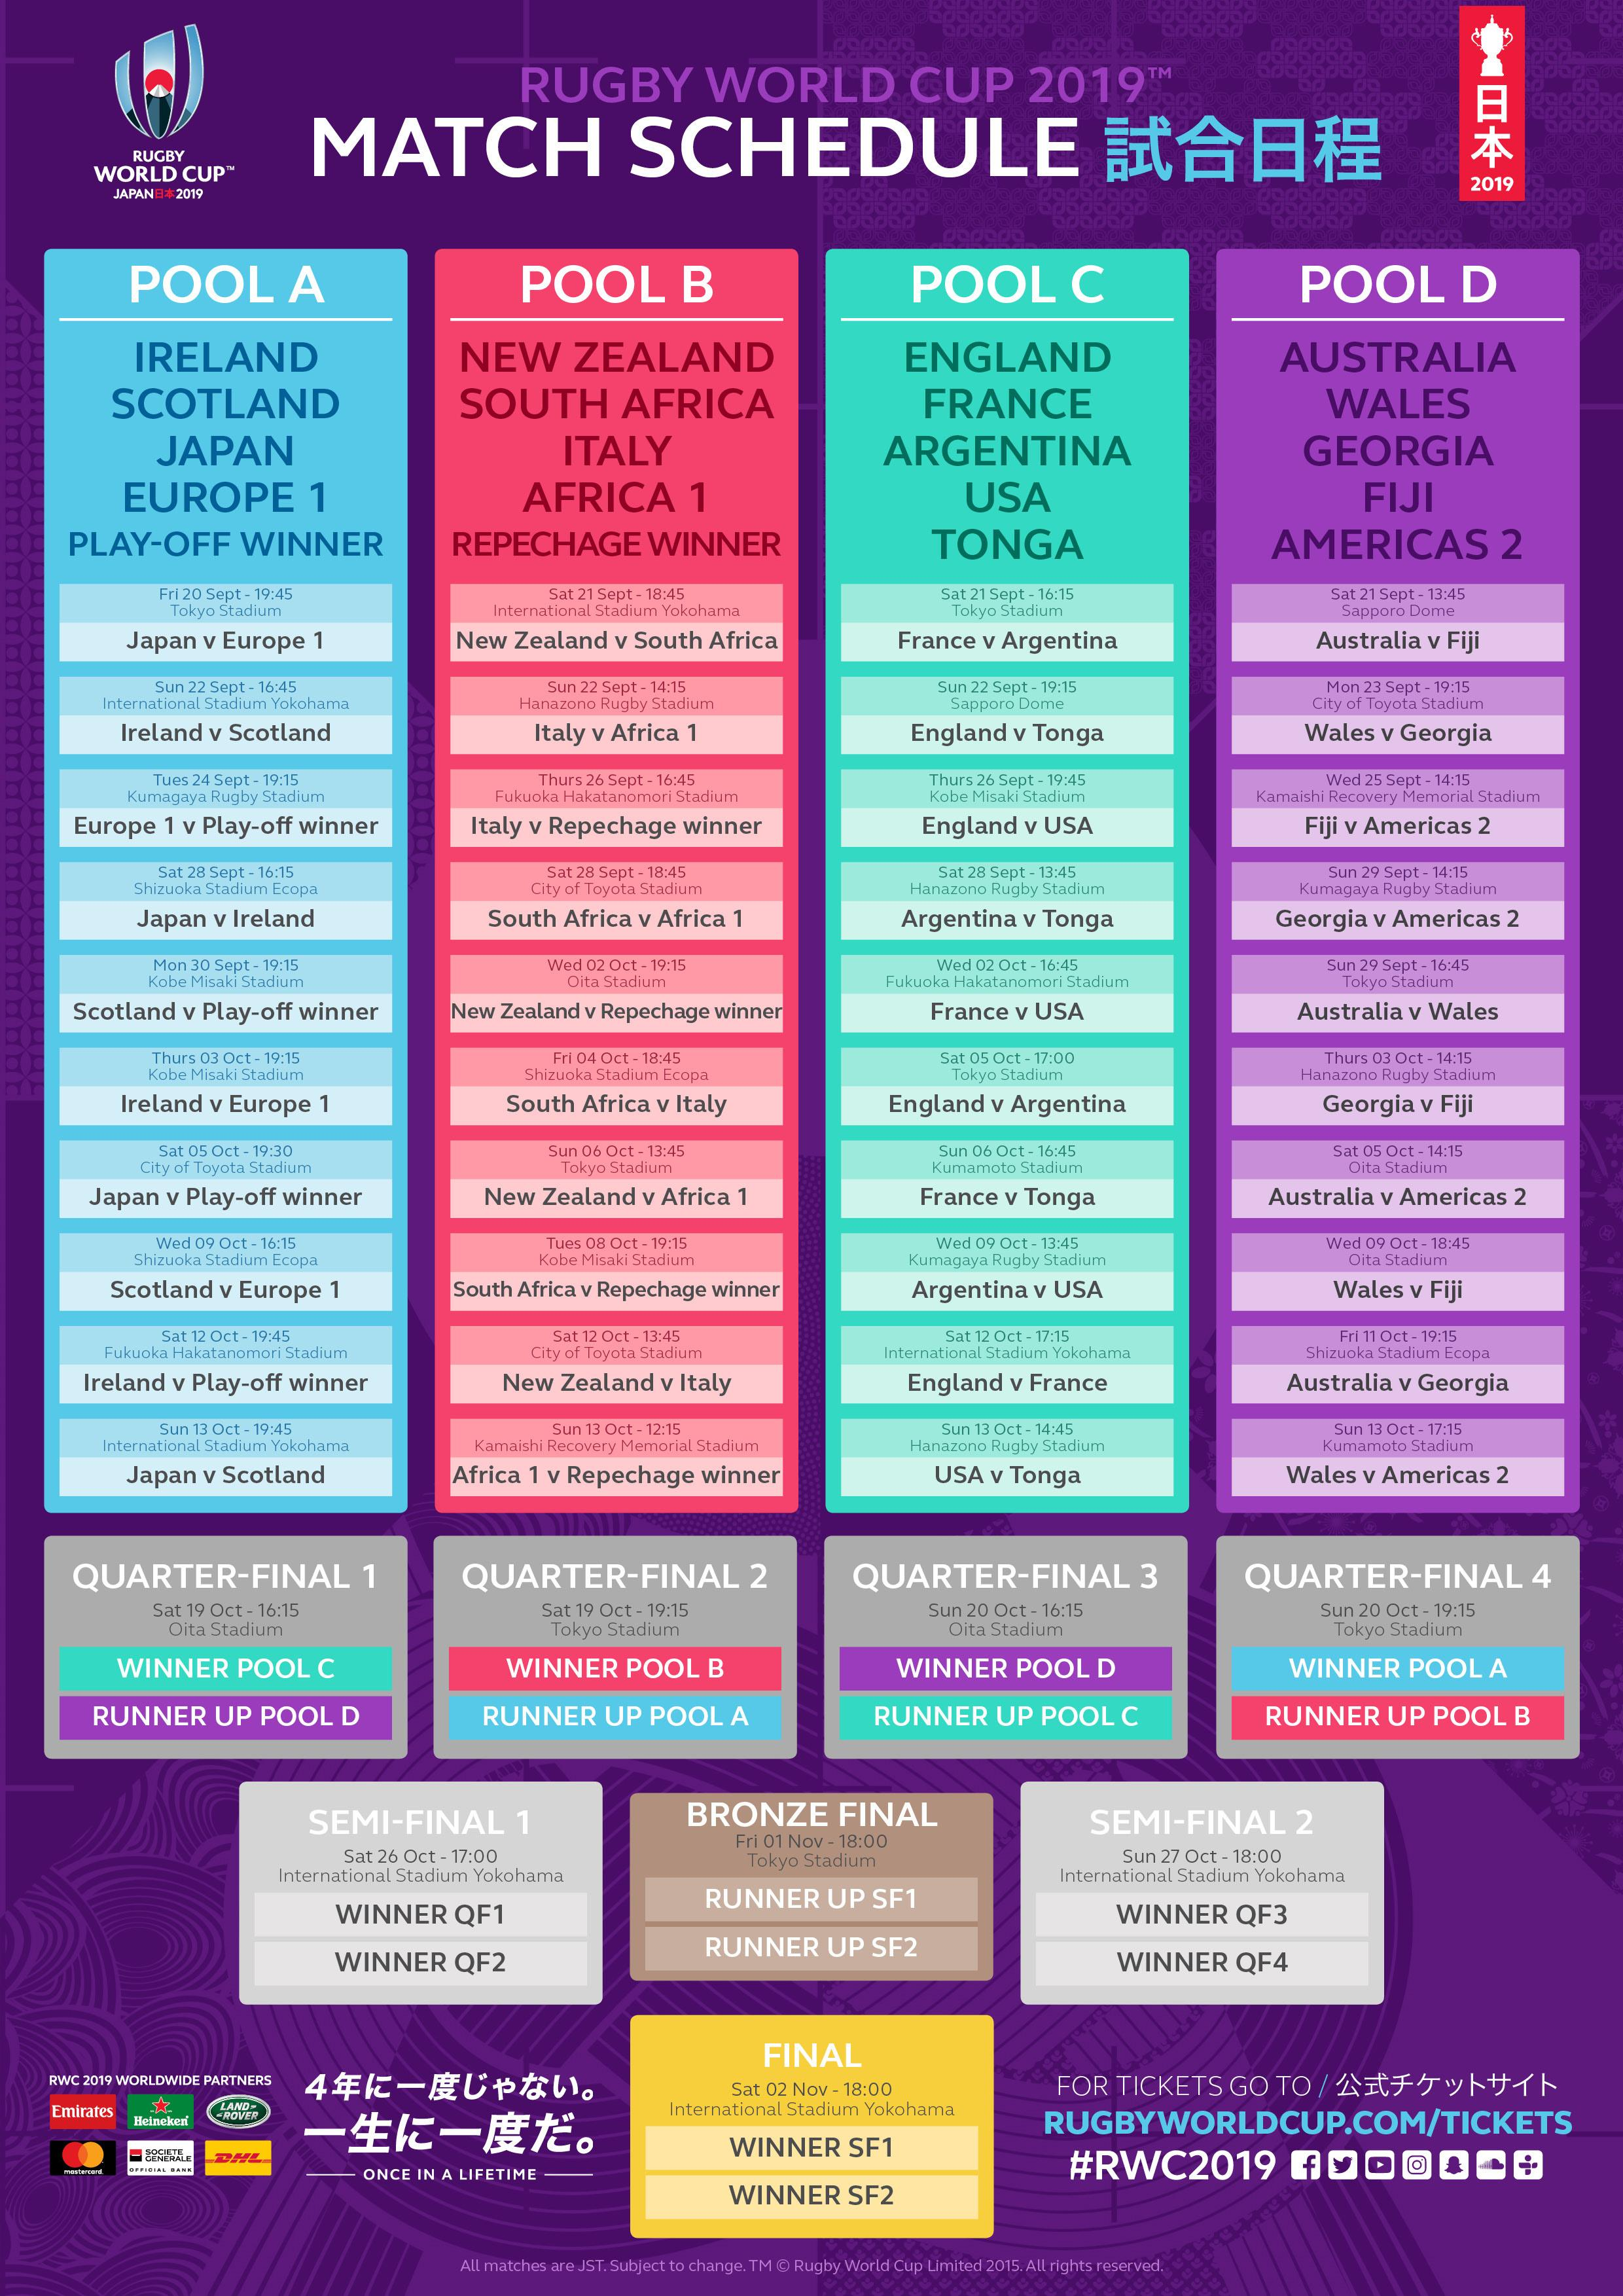 world cup 2015 schedule pdf free download